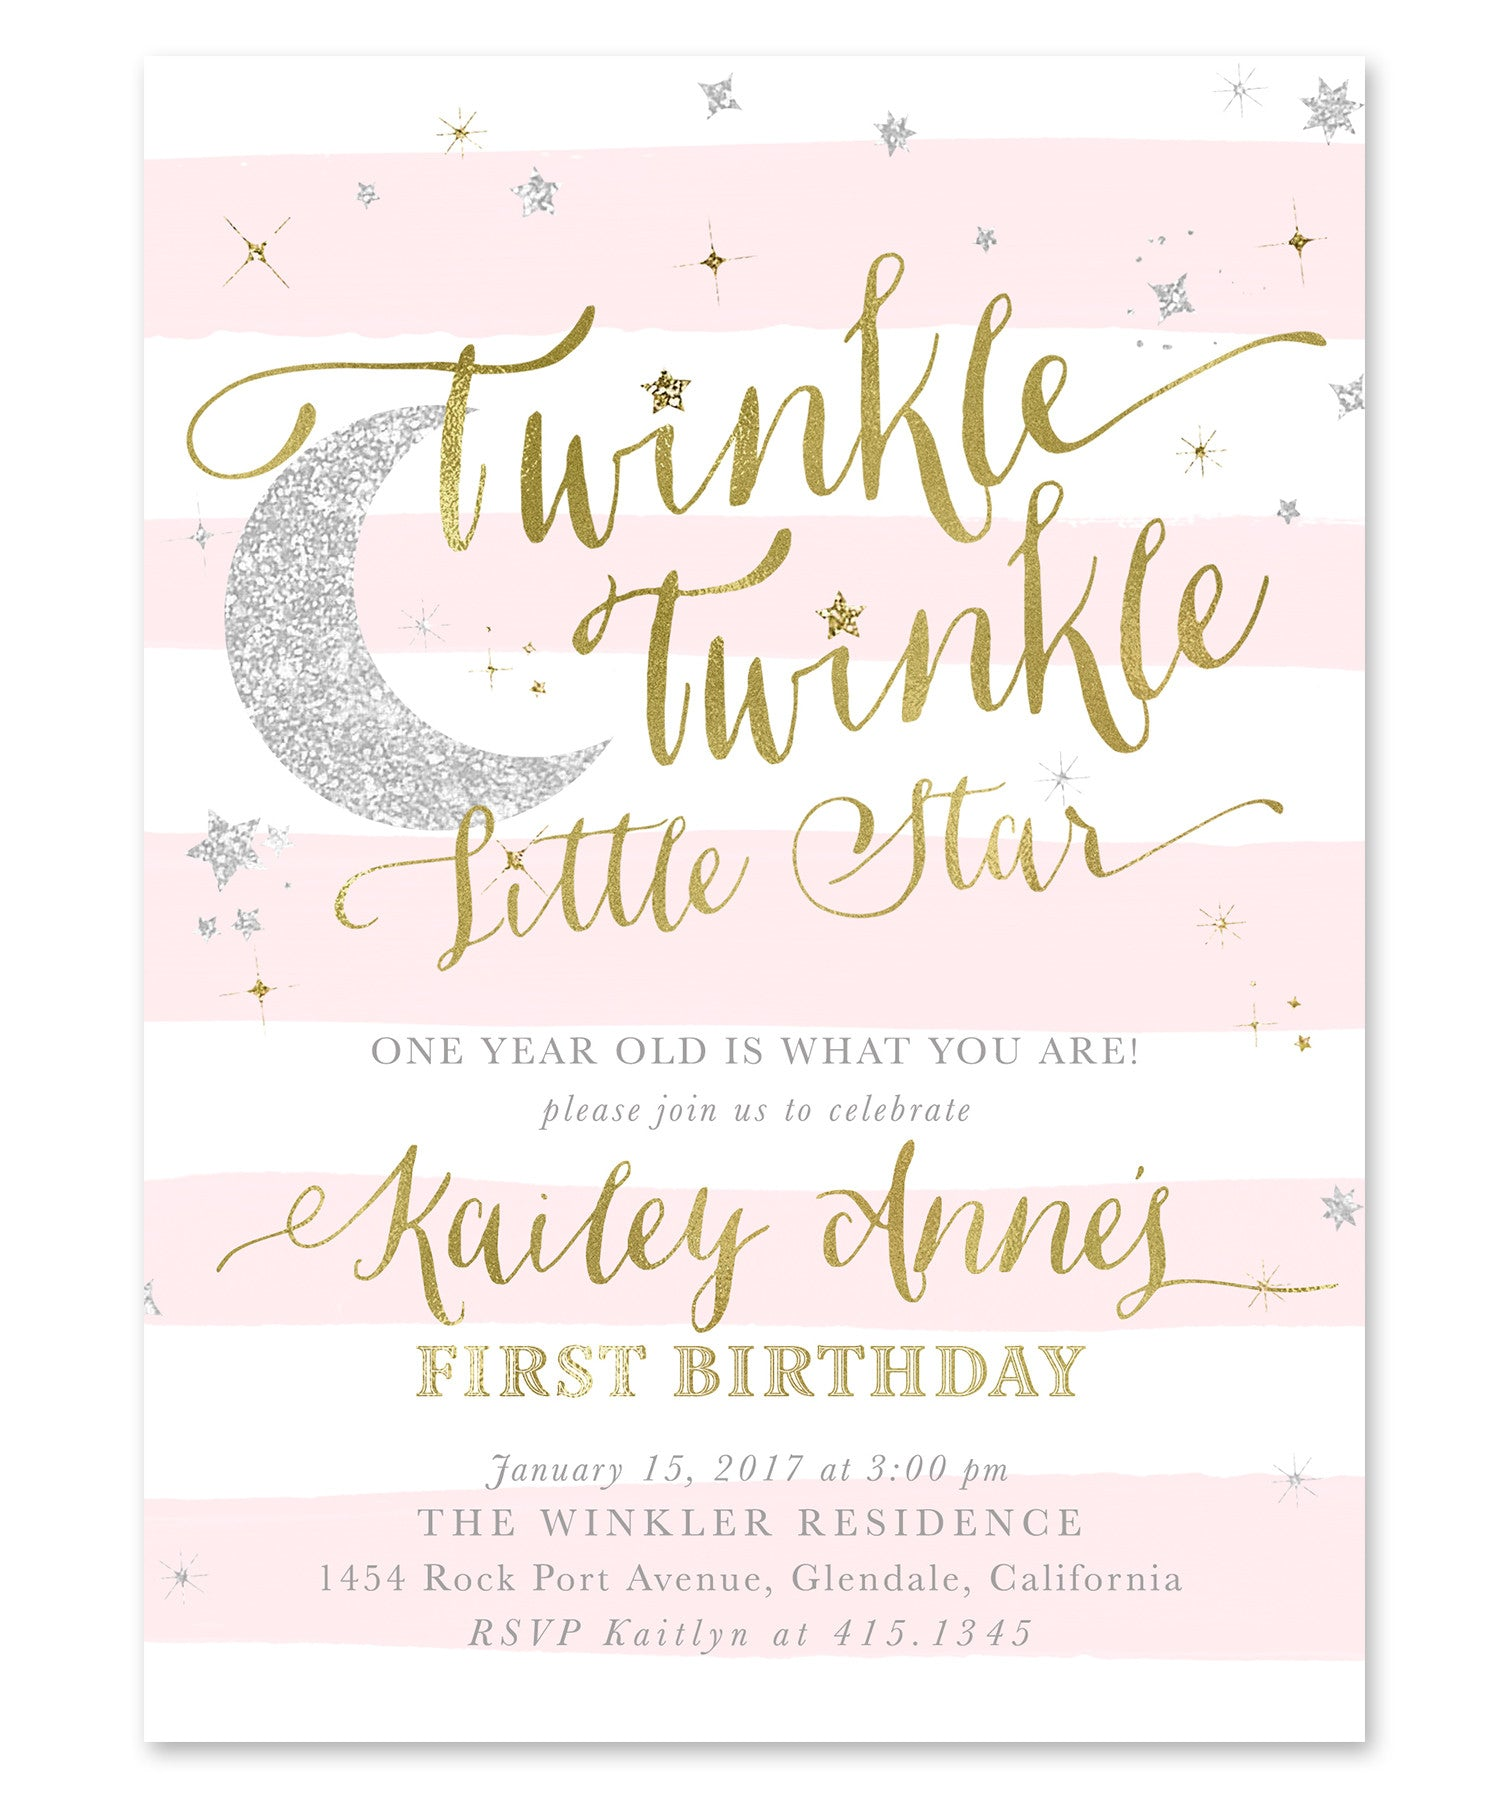 Twinkle Little Star Girl Birthday Invitation Blush Pink Stripes